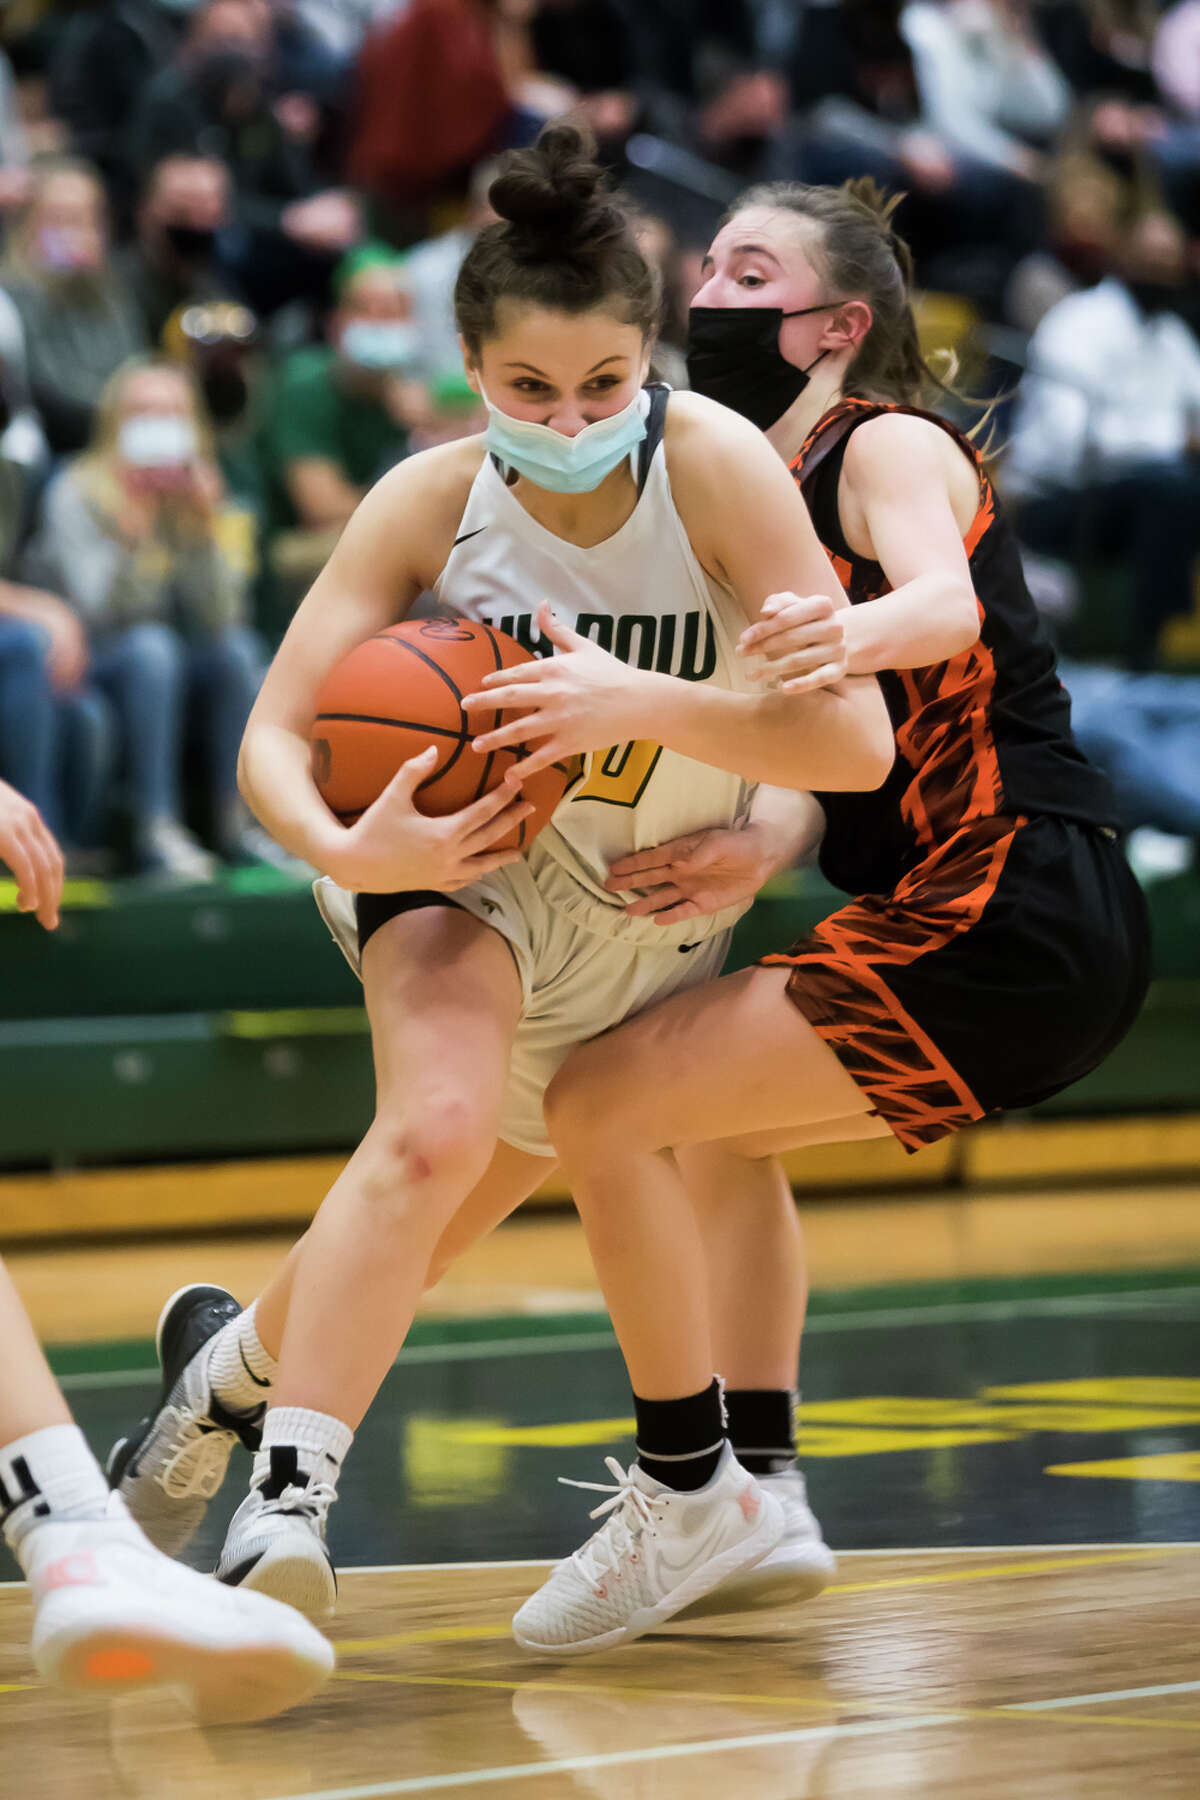 Dow's Chloe McVey dribbles down the court during the Chargers' regional championship victory over Flushing Wednesday, March 31, 2021 at H. H. Dow High School. (Katy Kildee/kkildee@mdn.net)